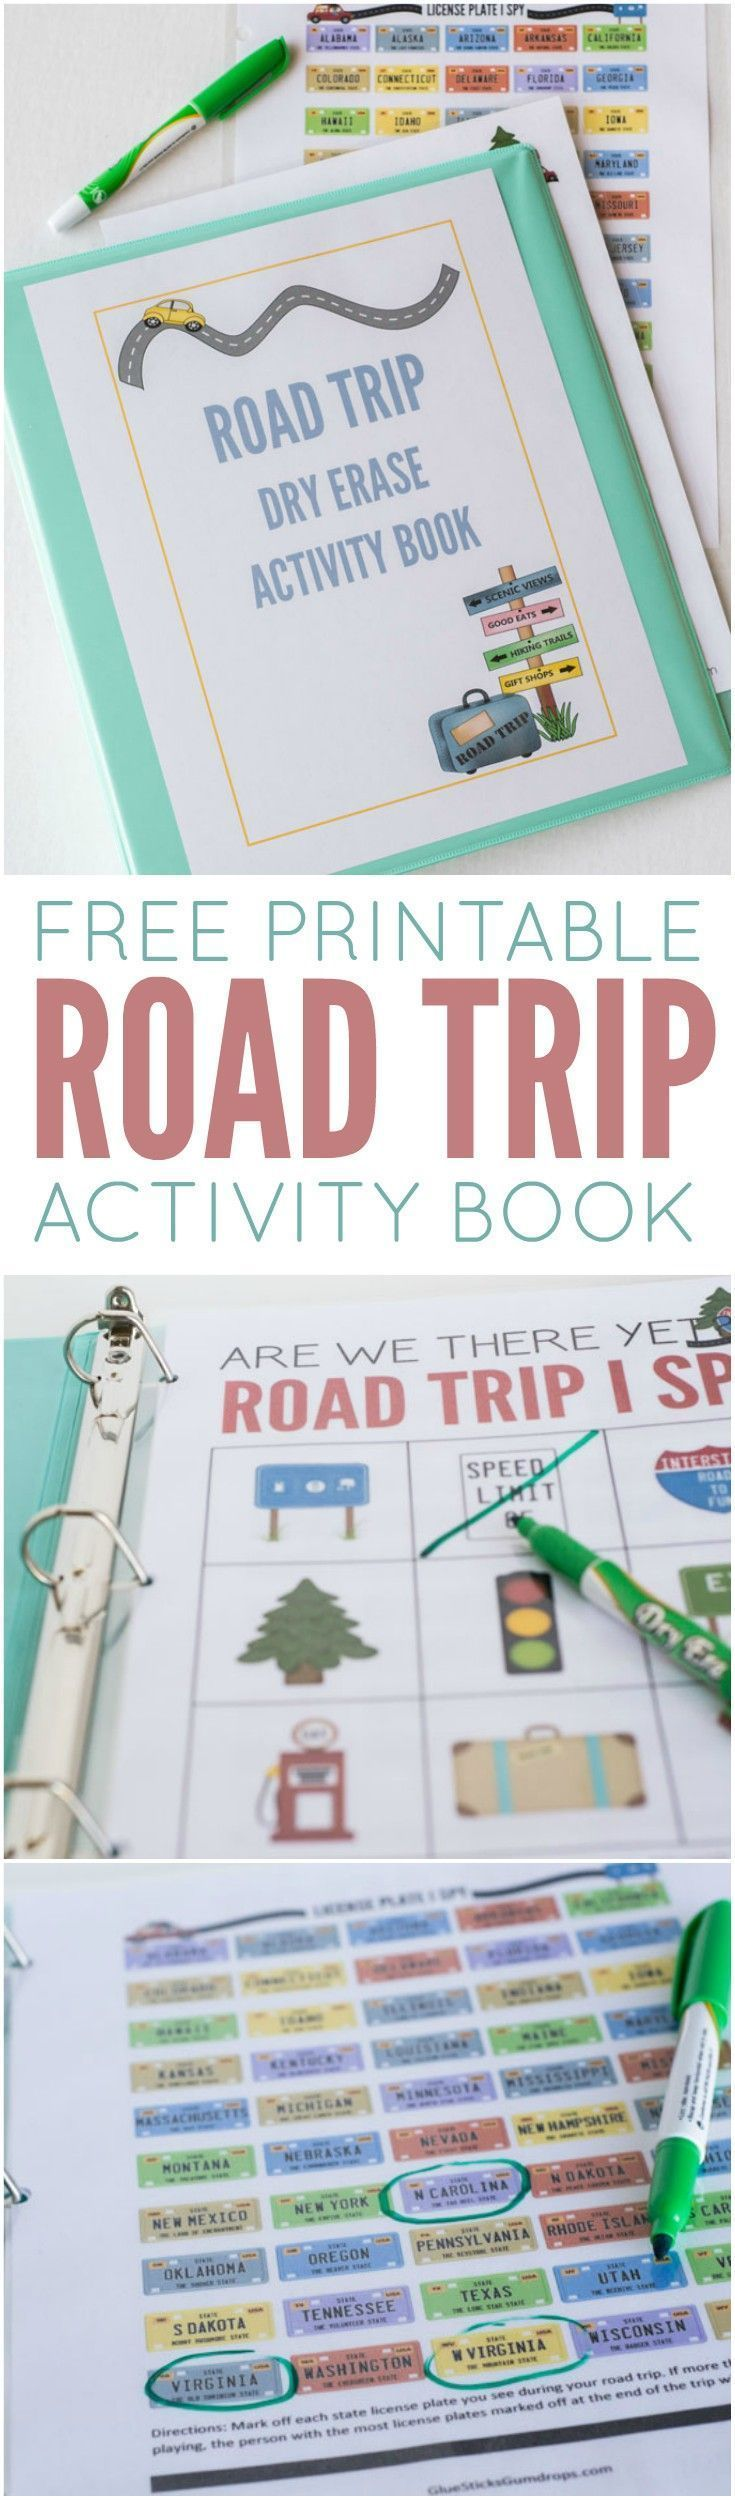 Dry Erase Road Trip Activity Book TRAVEL Traveling Tips